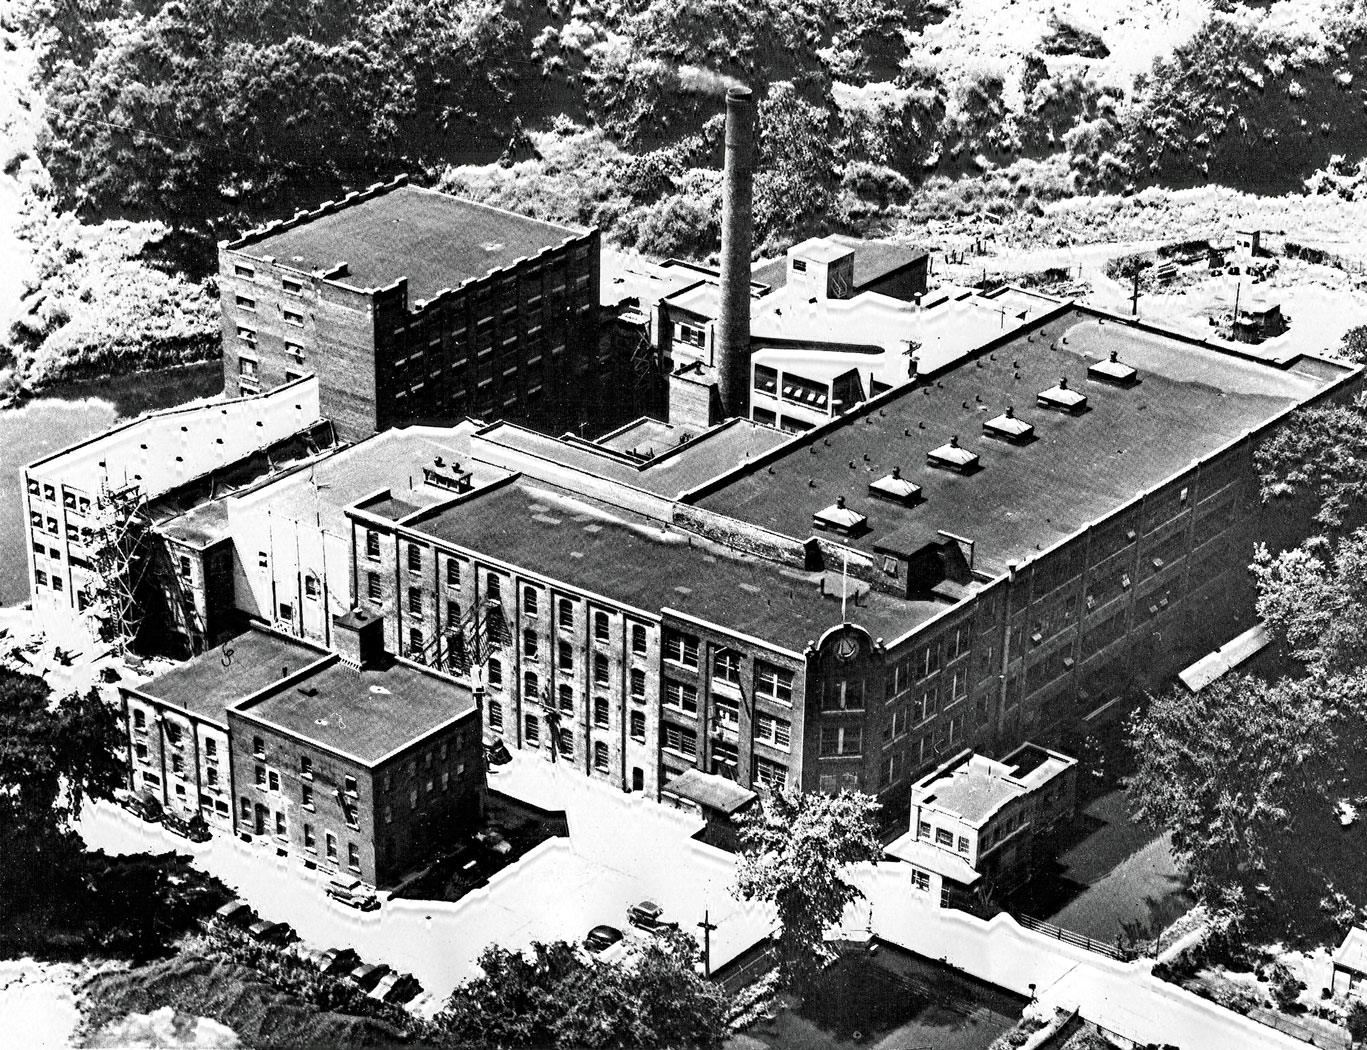 Slingsby Manufacturing Company Ltd  Started by William Slingsby, a Yorkshireman, in 1872.The company grew from 15 employees to over 800 by 1947. The plant was located on Grand River Avenue at the foot of St Paul Avenue. Canadian Celanese of Montreal acquired the company on 13-February-1959.  Image courtesy of the Brant Historical Society